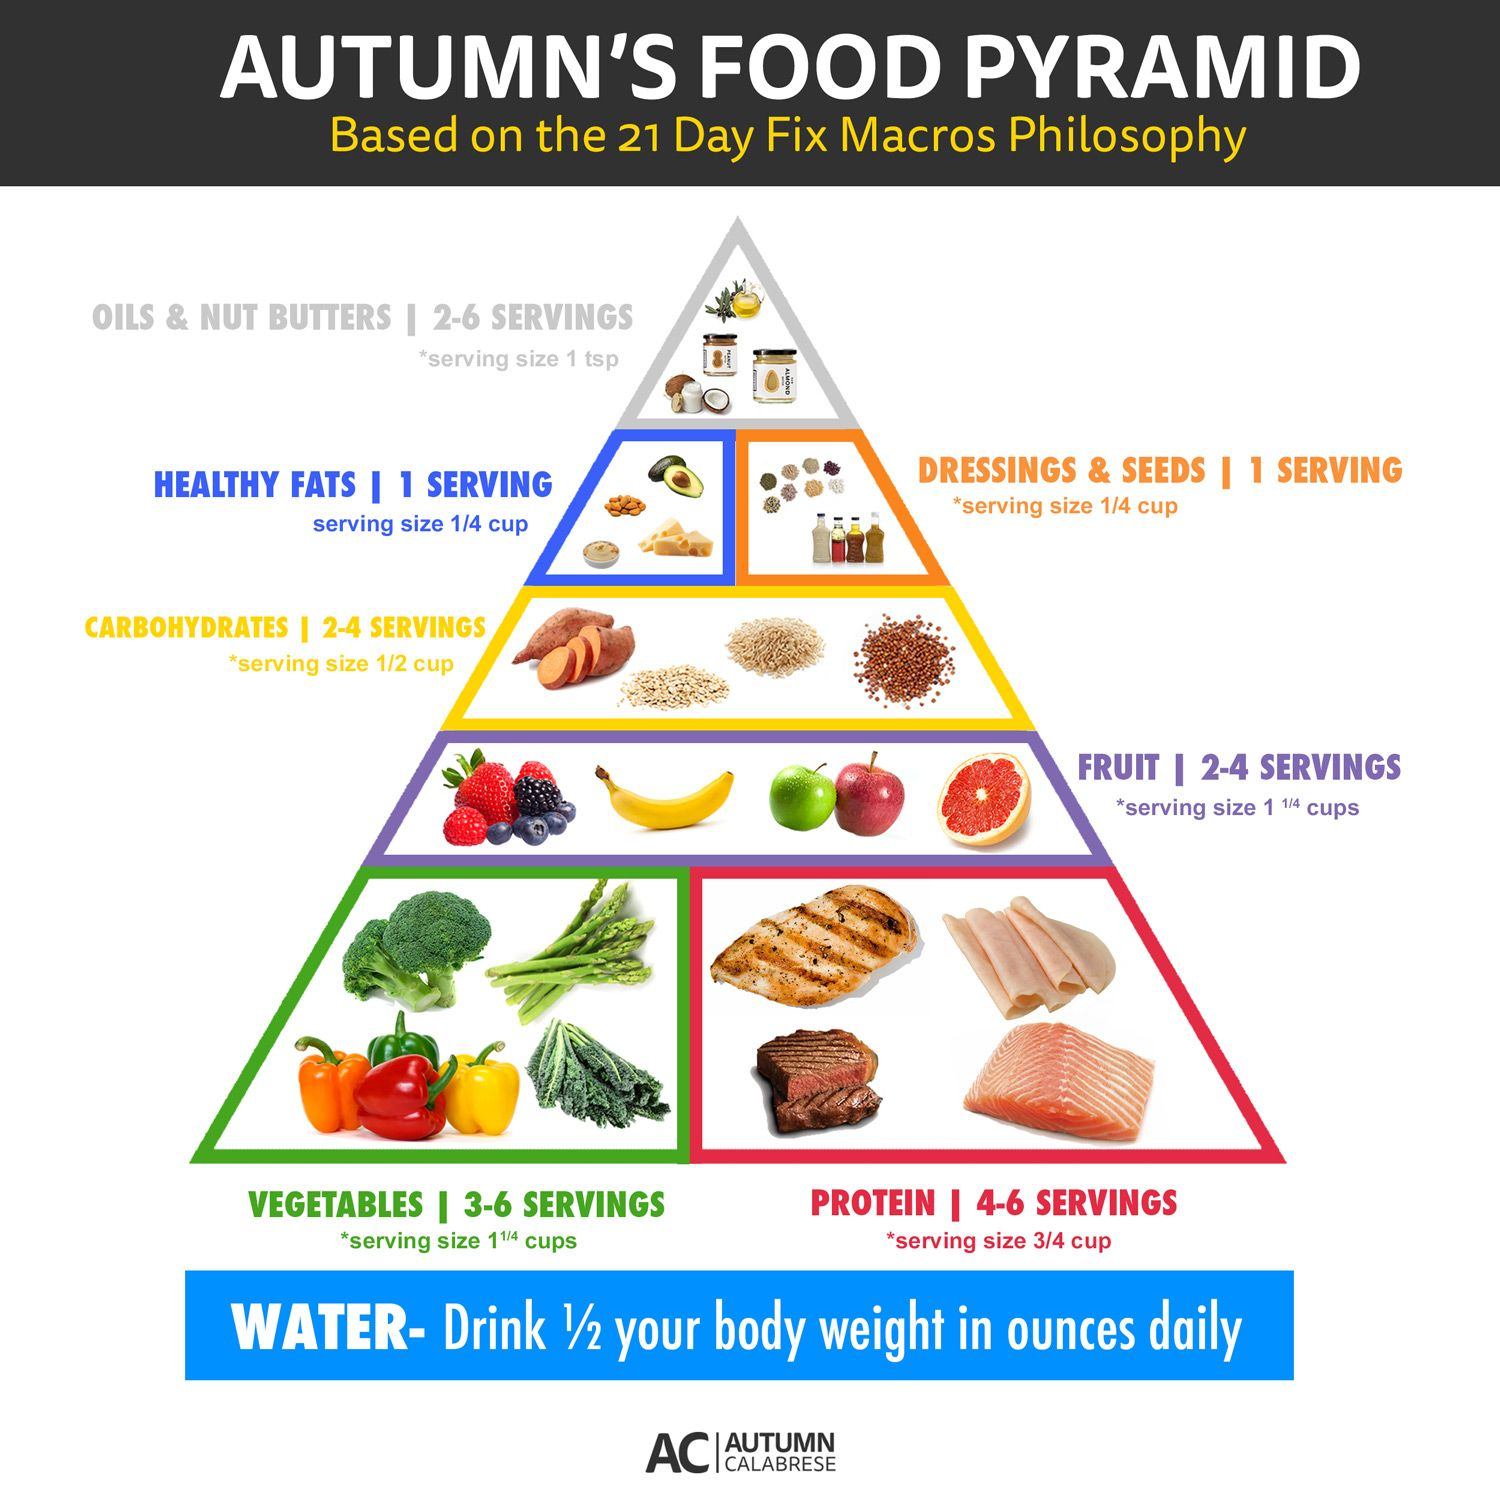 21 Day Fix Food Pyramid